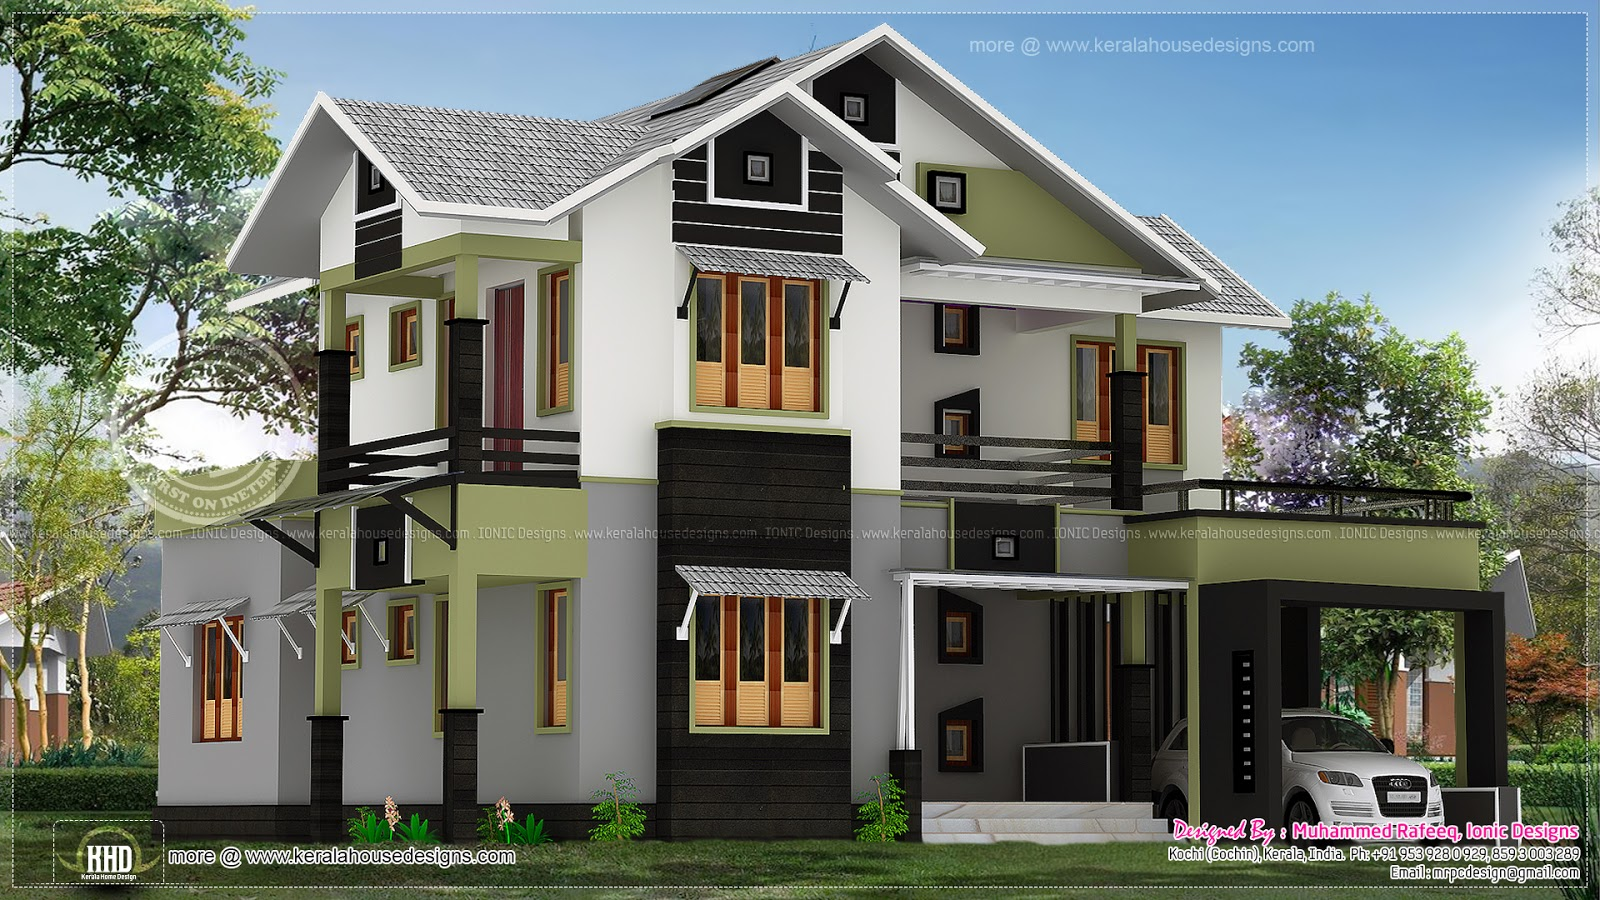 185 square meter 4 bedroom house design kerala home for 120 sqm modern house design